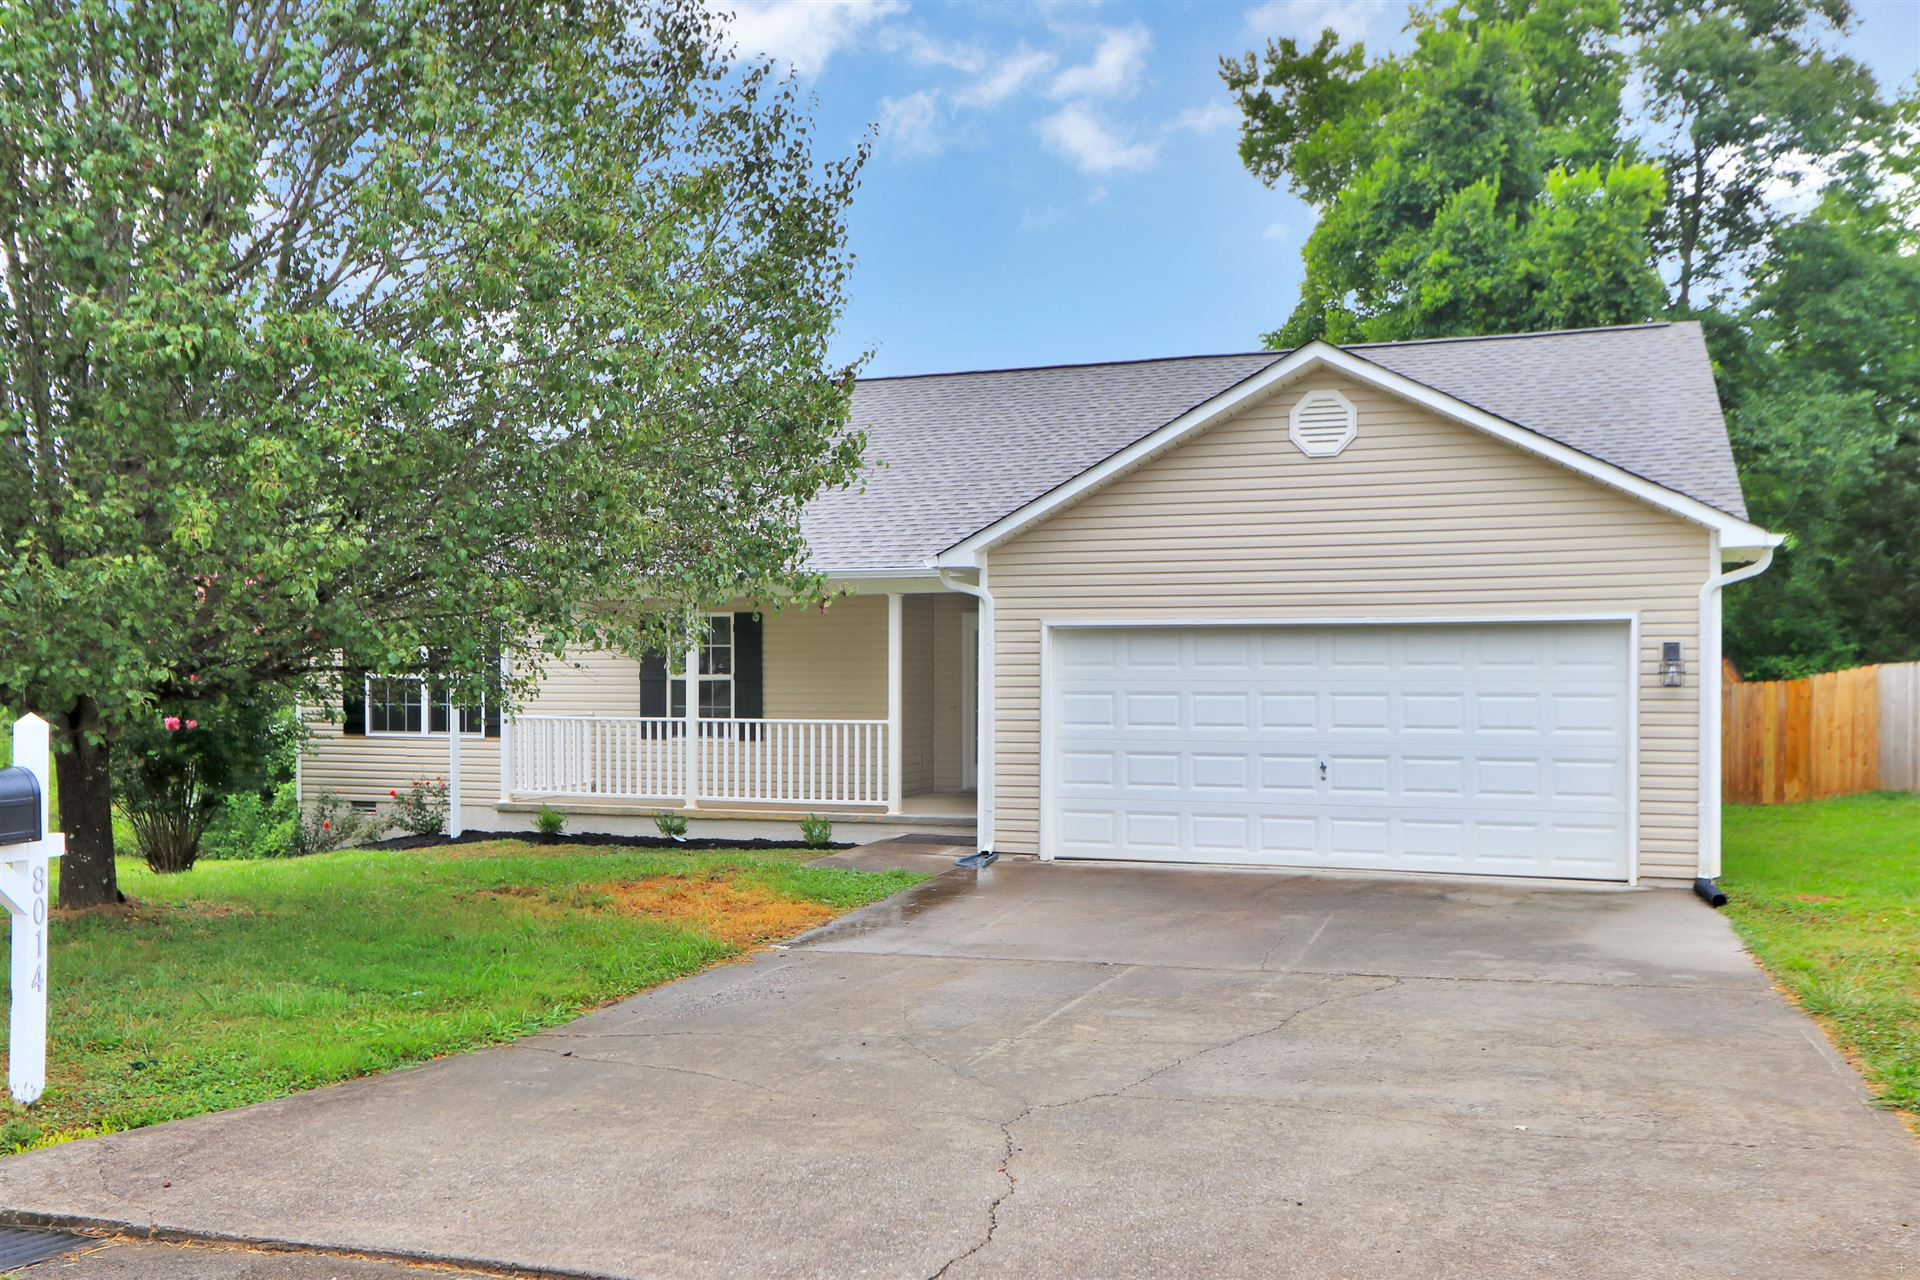 Photo of 8014 Cold Stream Lane, Knoxville, TN 37920 (MLS # 1162026)